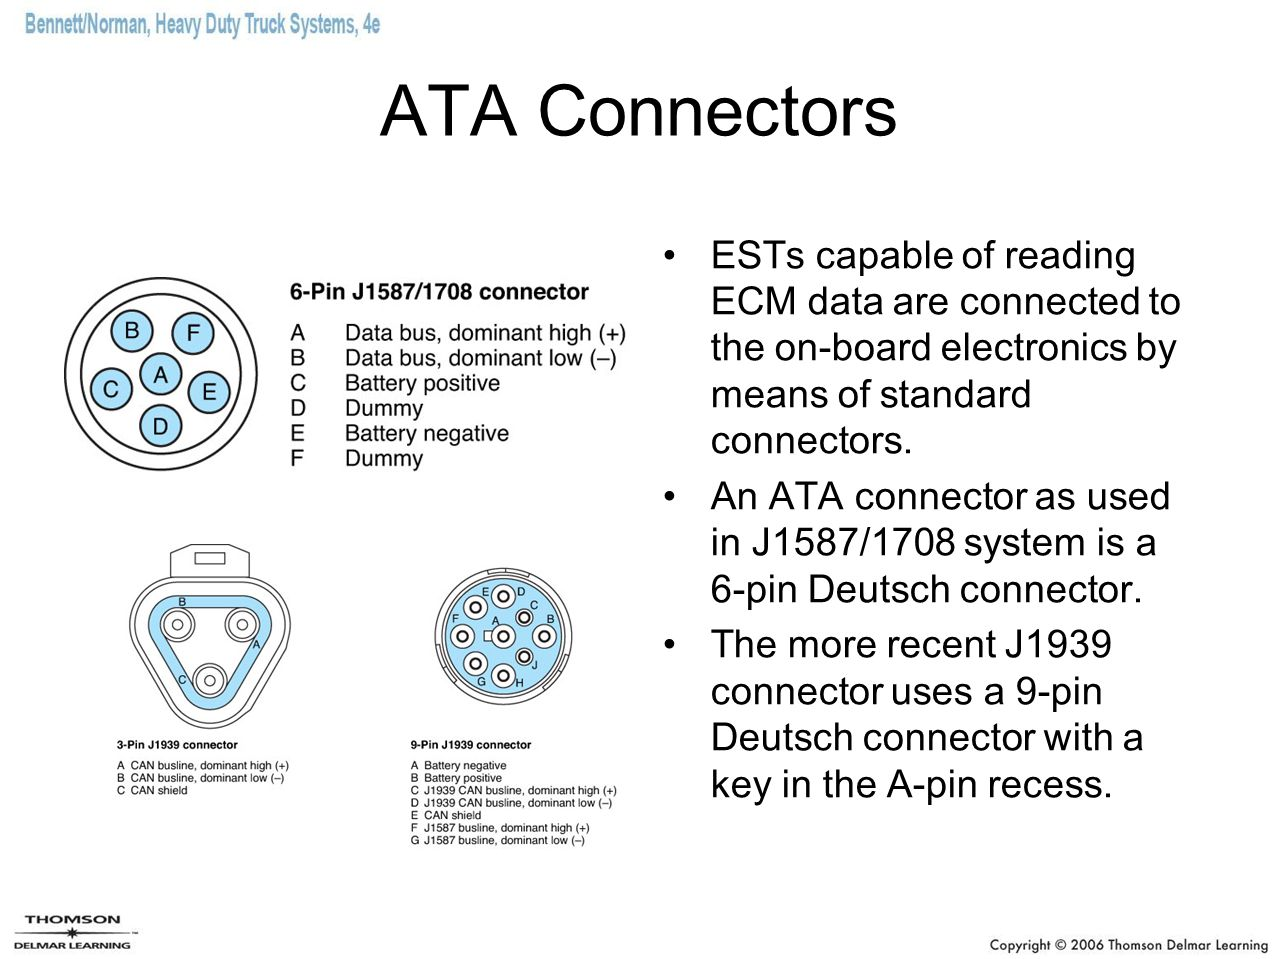 ATA Connectors ESTs capable of reading ECM data are connected to the on-board electronics by means of standard connectors. An ATA connector as used in